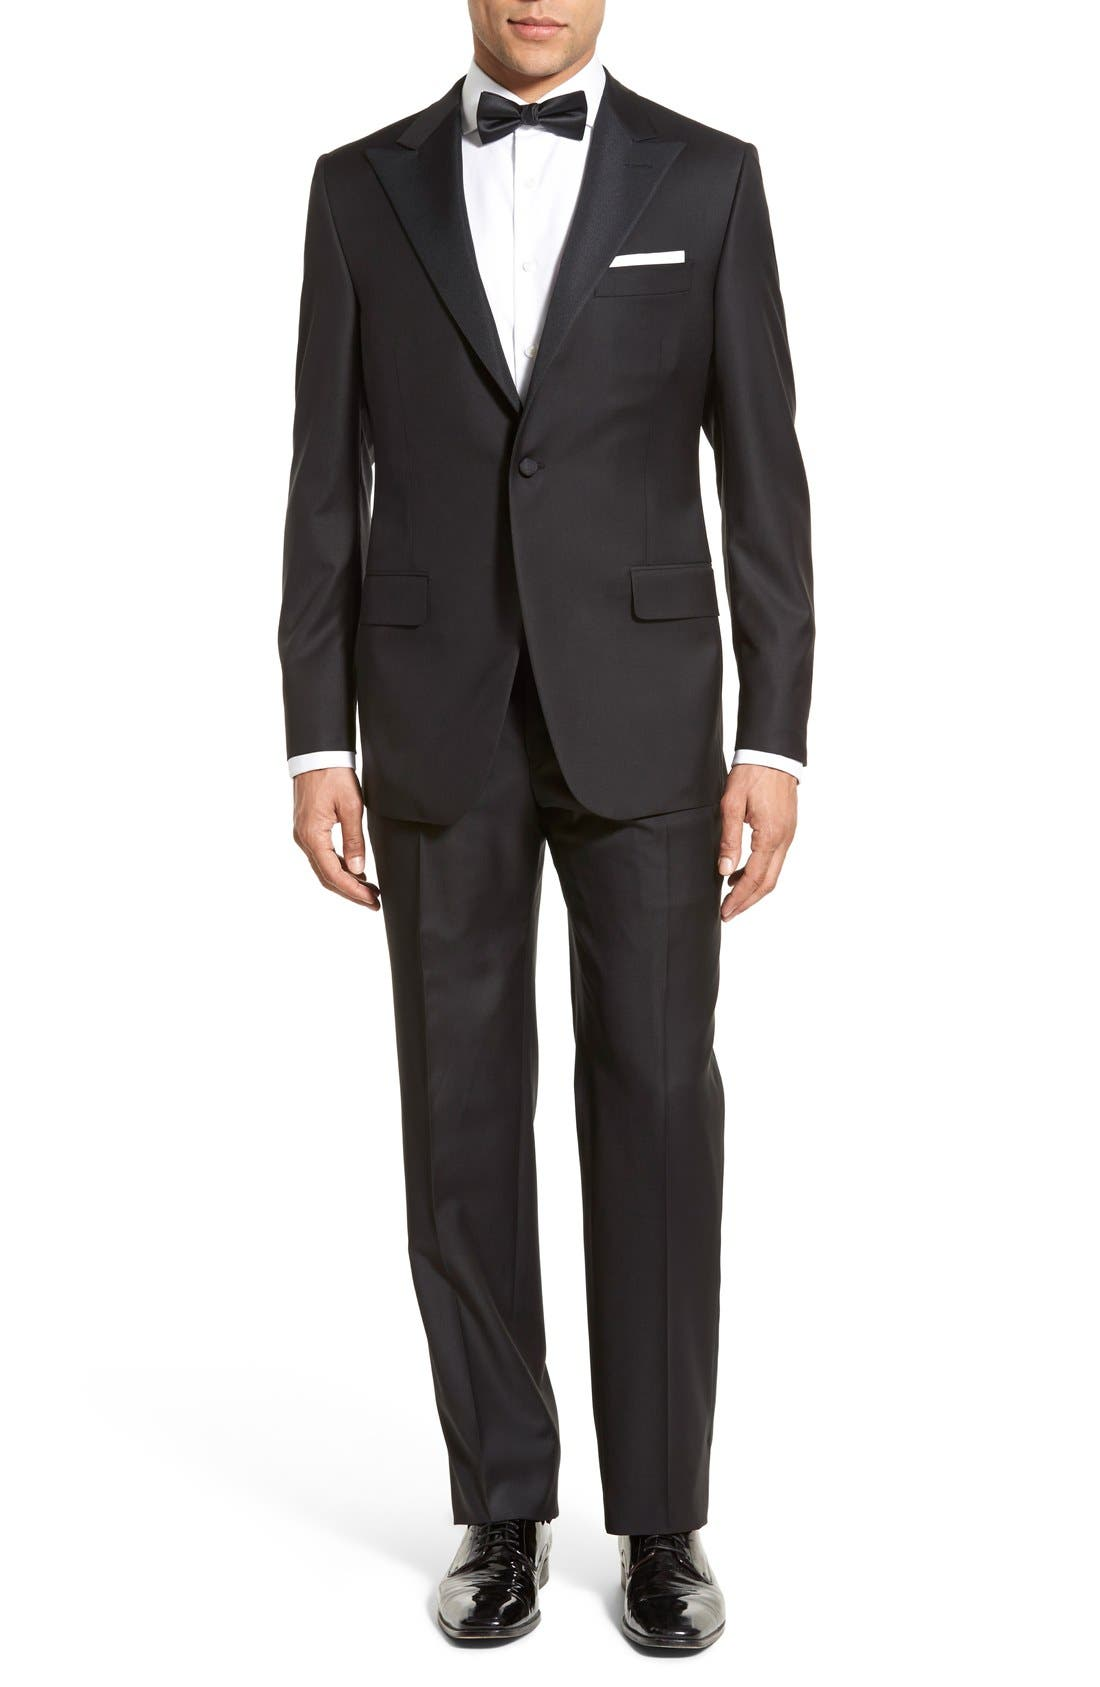 Hickey Freeman Classic Fit Tasmanian Wool Tuxedo